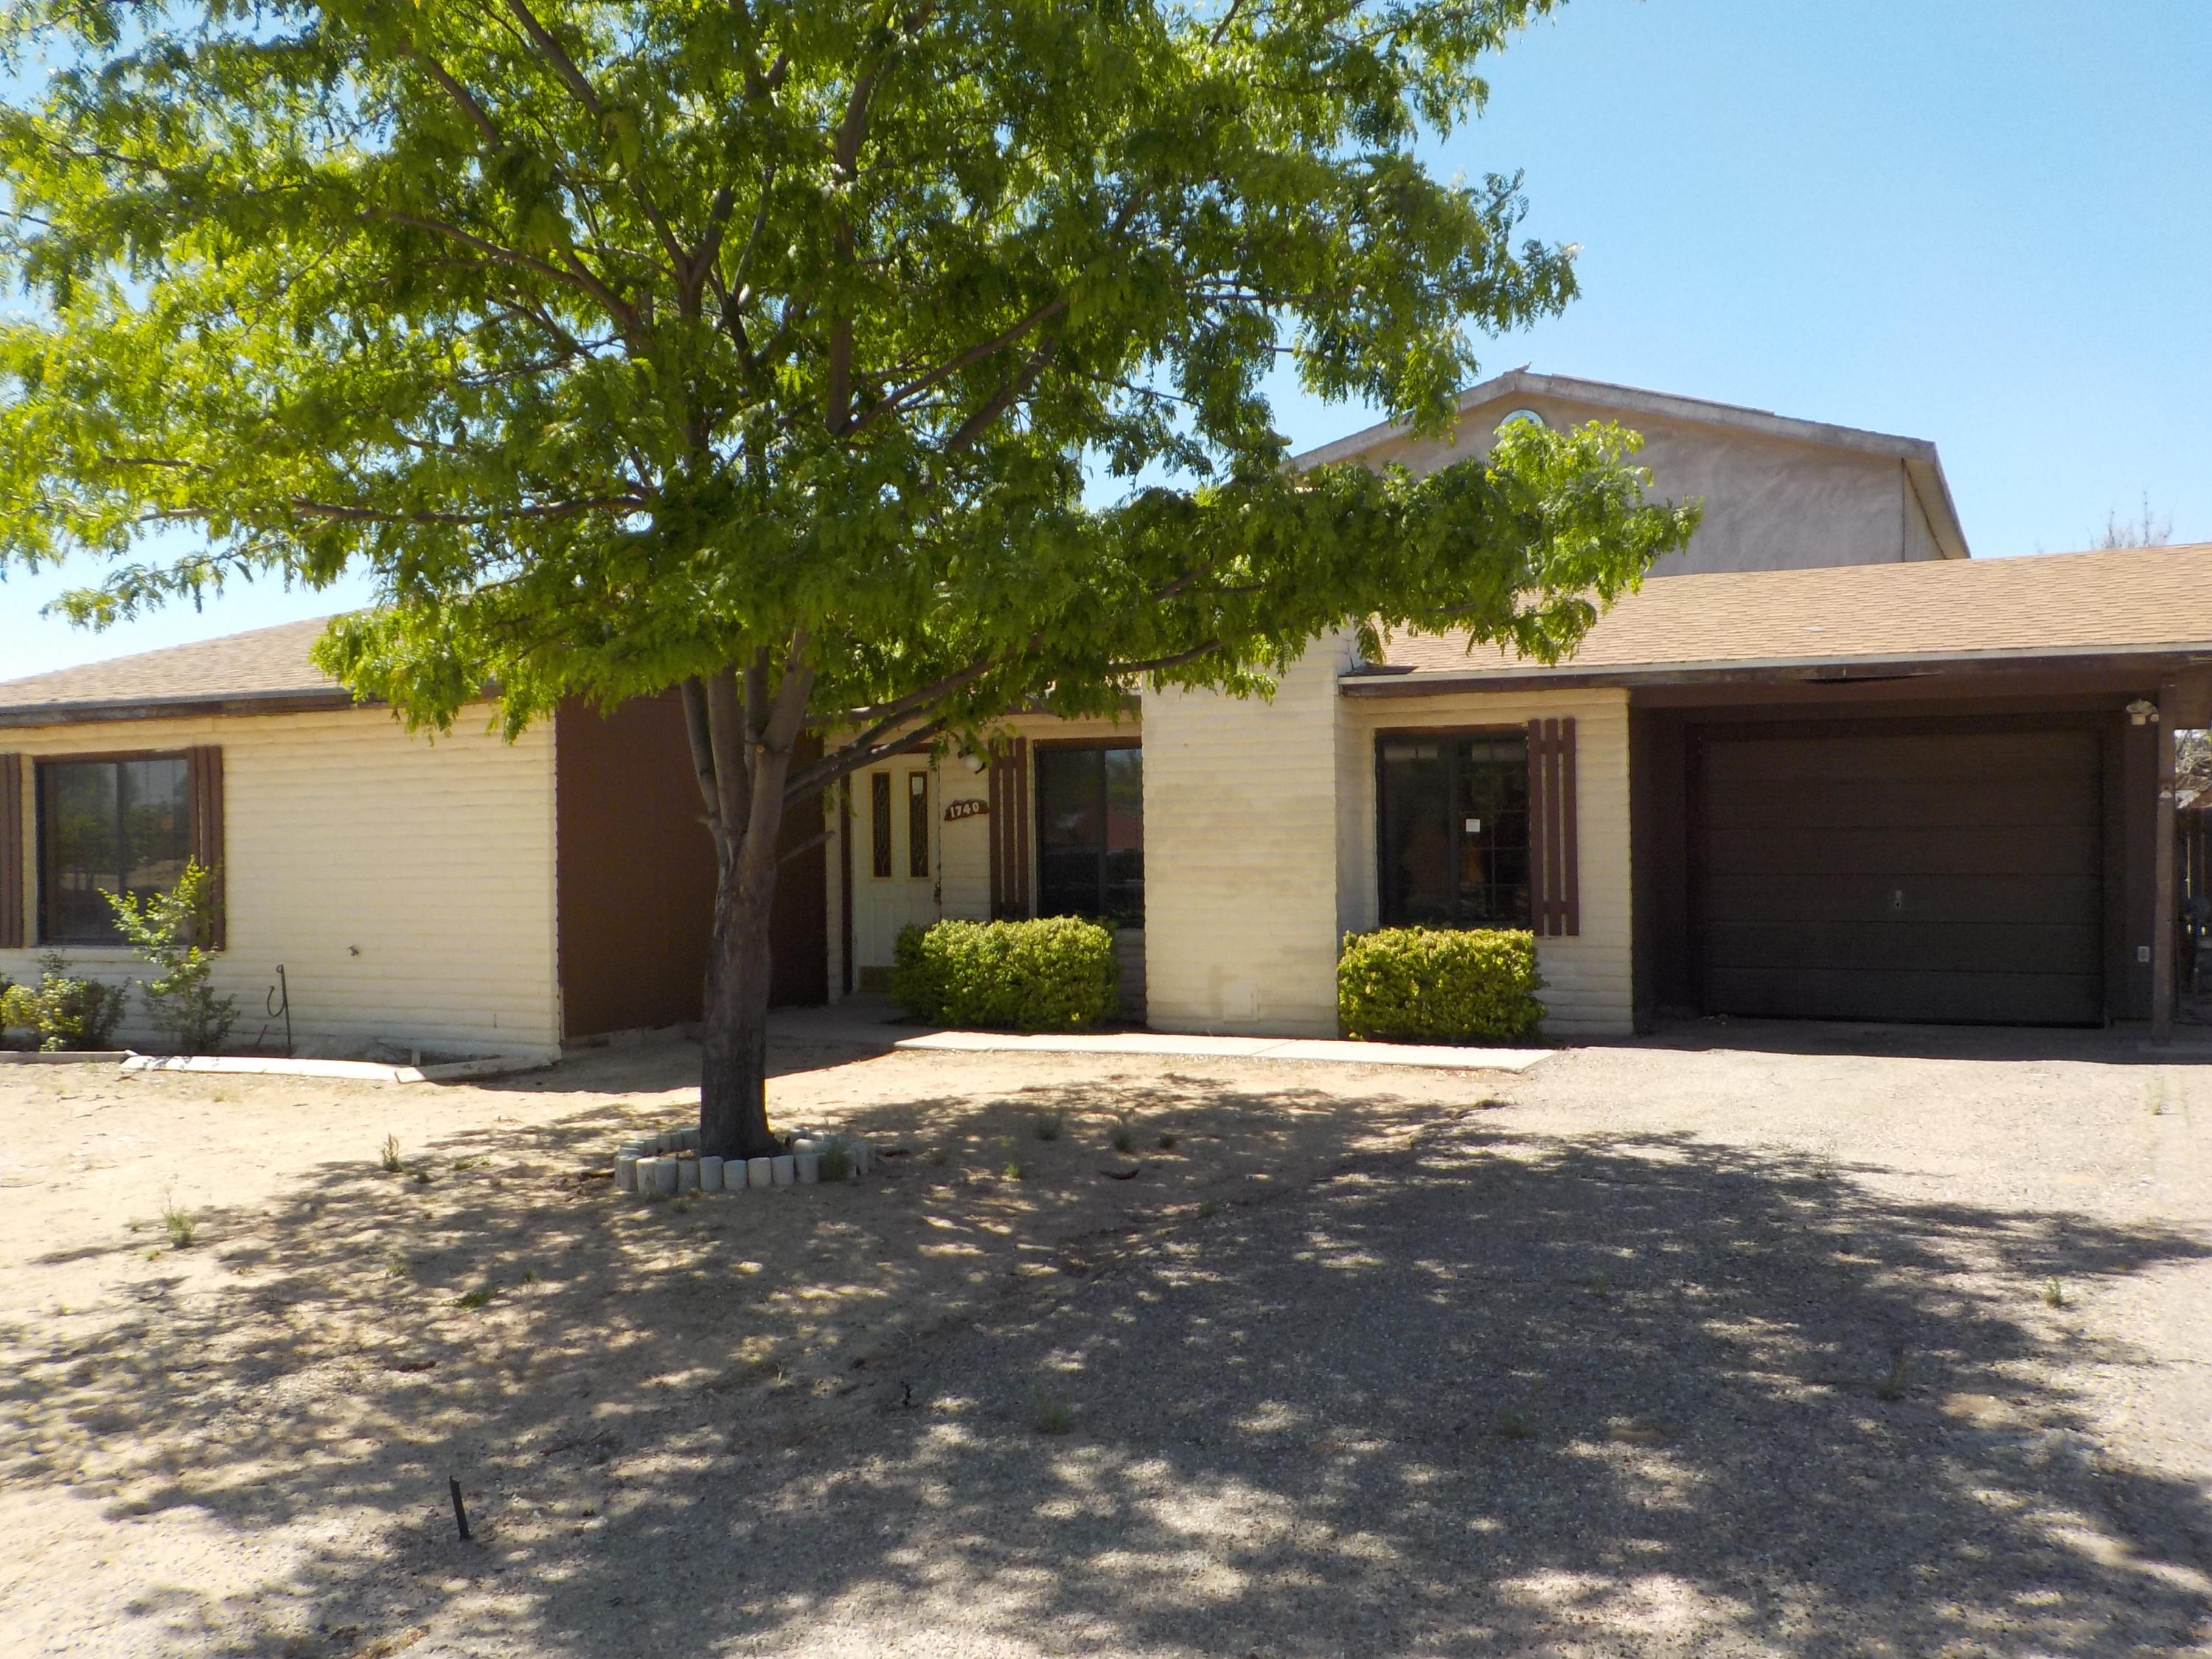 Located in the heart of Rio Rancho. Great home with 4 bedrooms and three bathrooms. Open floor plan, large living area, spacious kitchen and bedrooms.